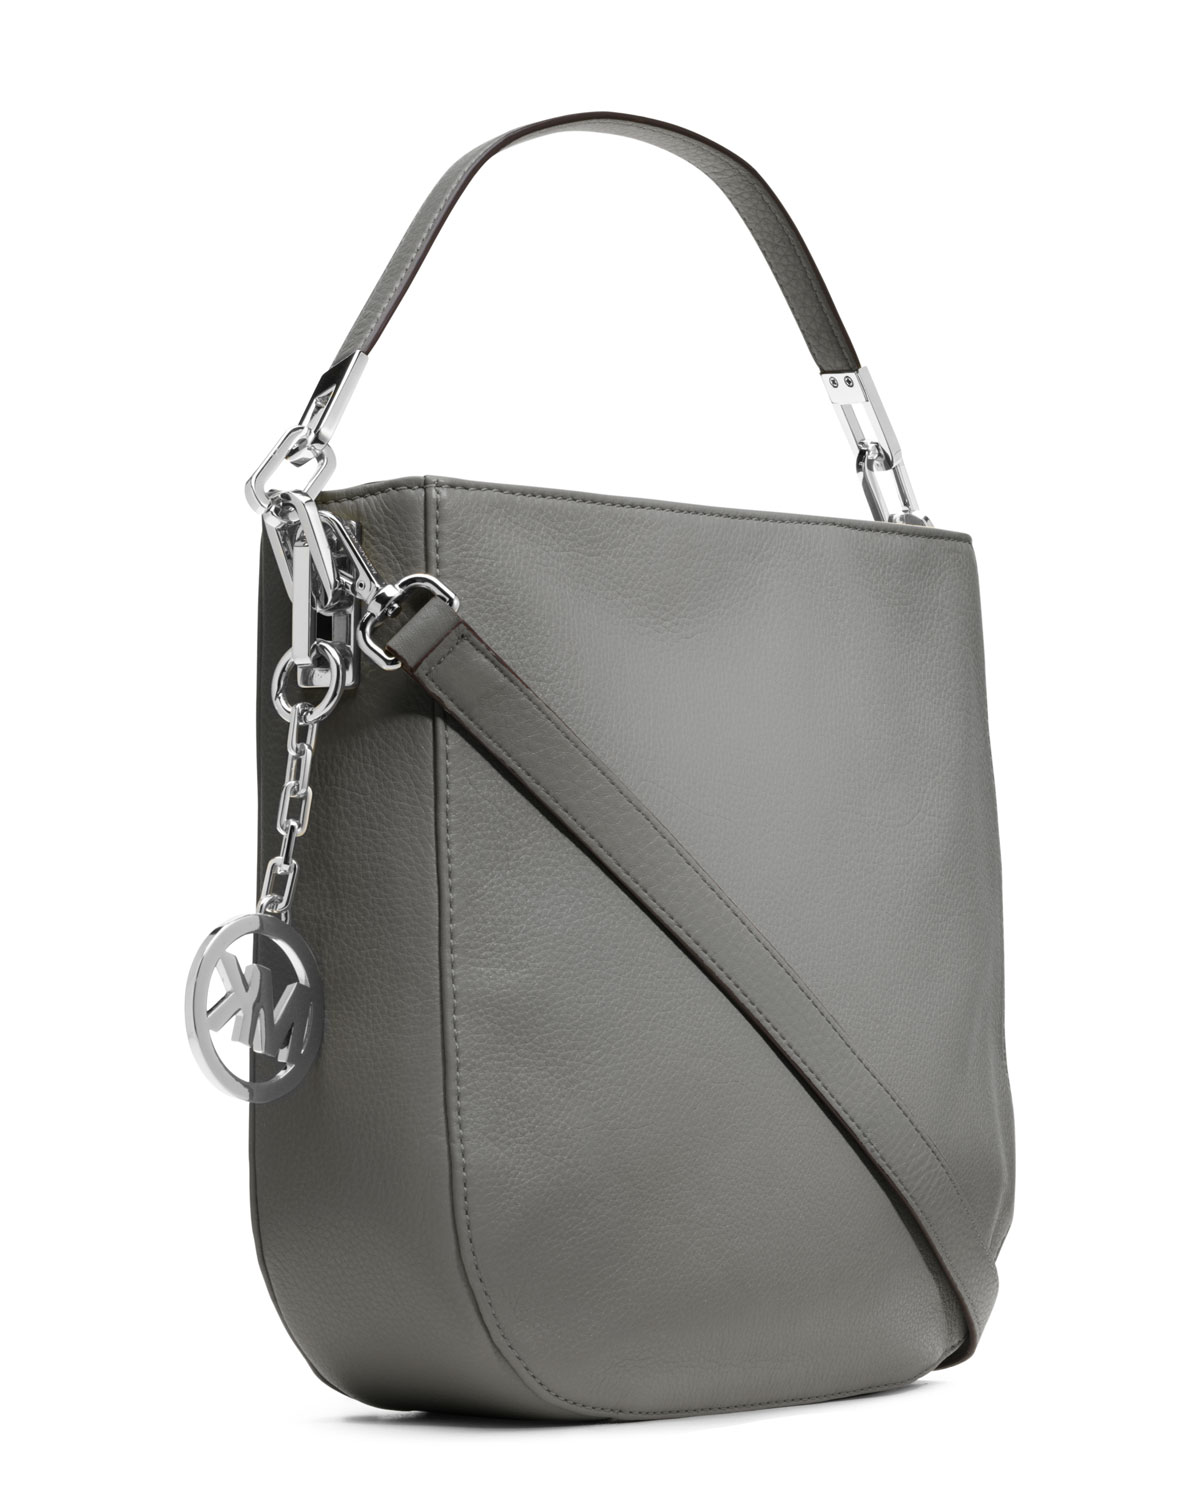 0d563e1713bd Gallery. Previously sold at  Neiman Marcus · Women s Michael Kors Brooke